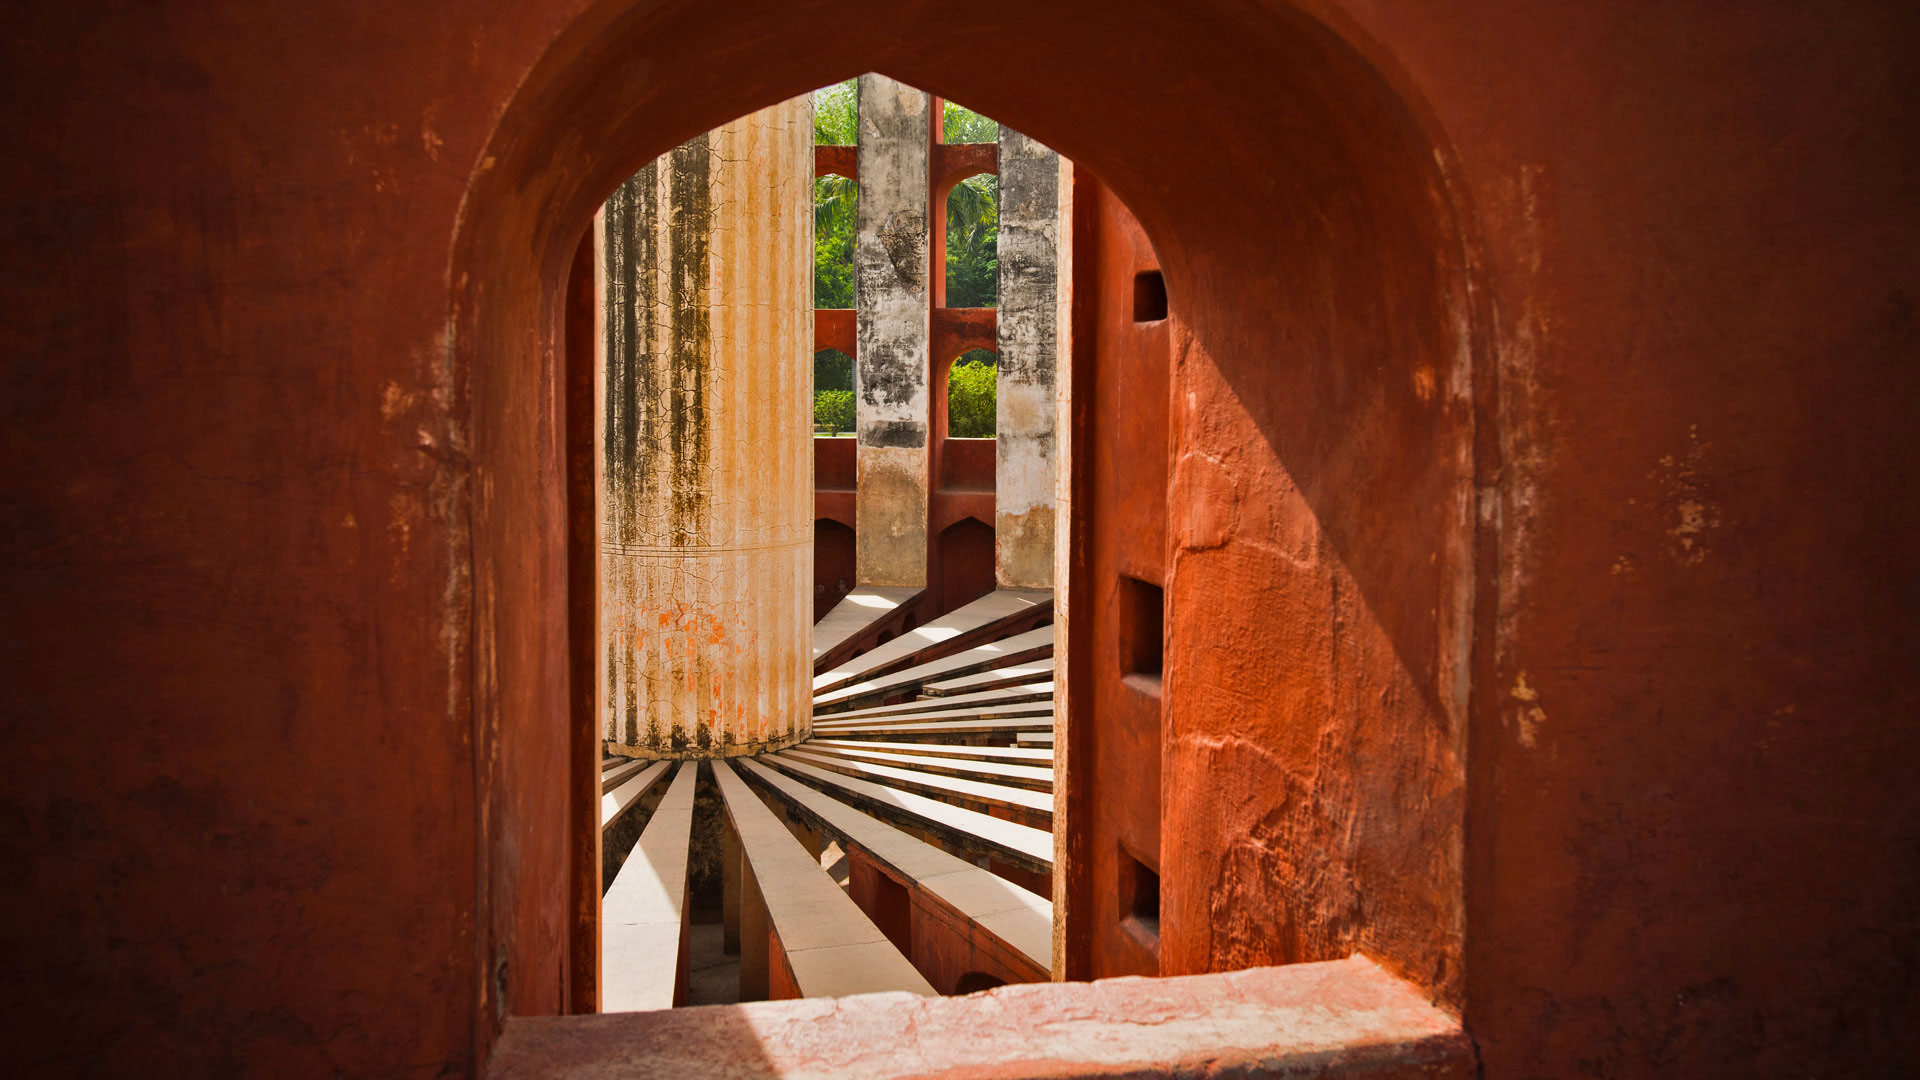 Part of the Jantar Mantar observatory complex in New Delhi, India (© Uniquely India/Getty Images)